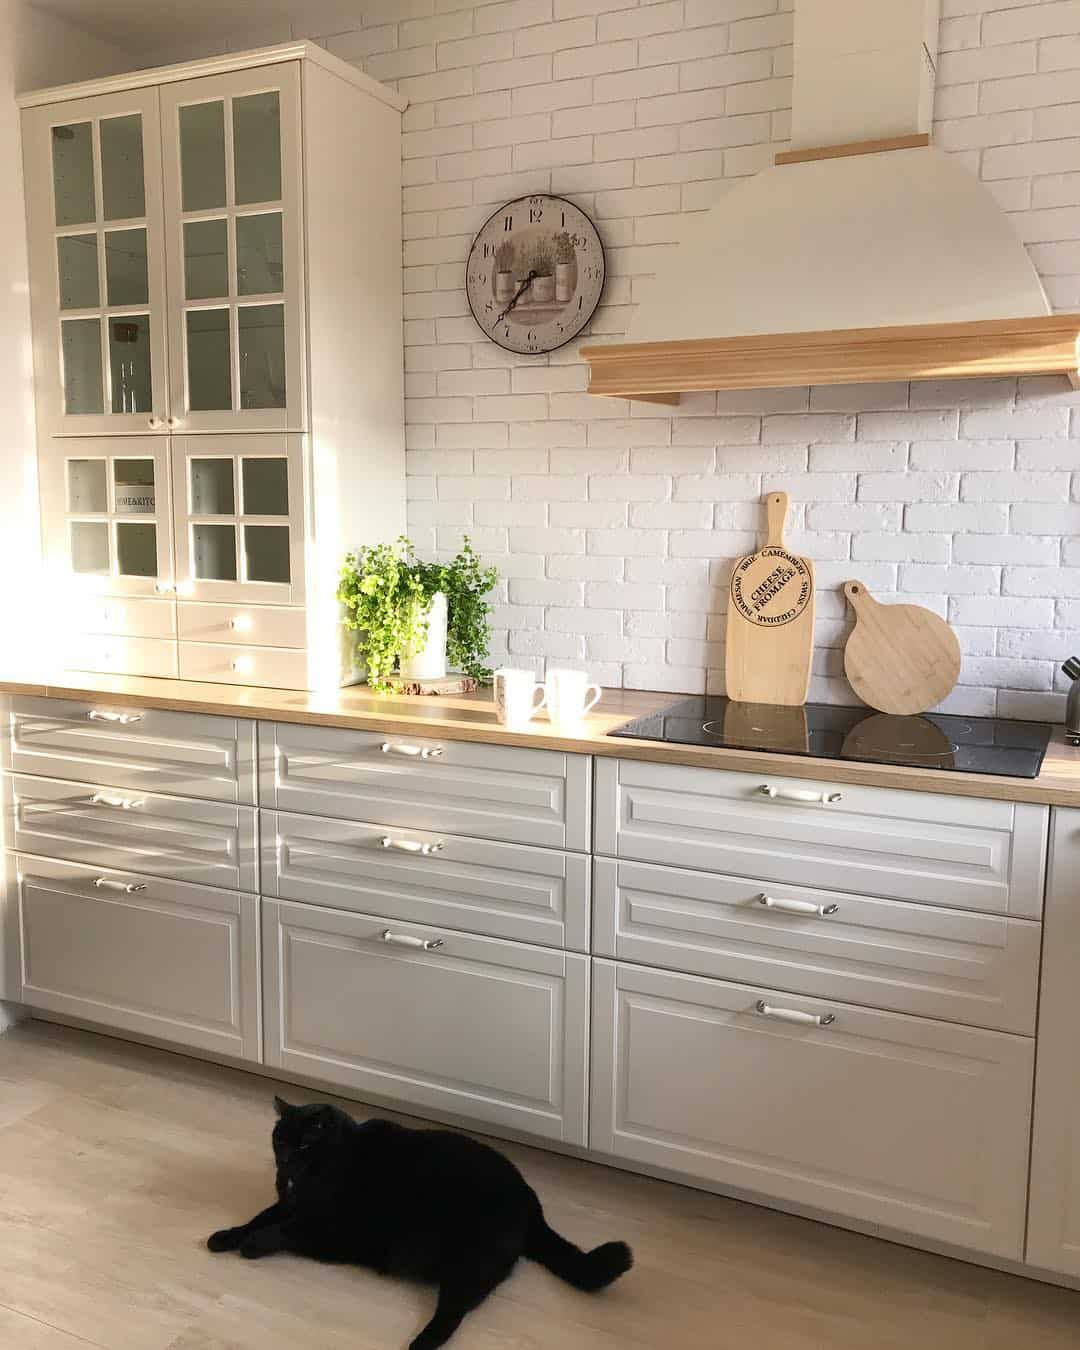 28 Small Kitchen Design Ideas: 28 Pure And Clean White Kitchen Design Ideas